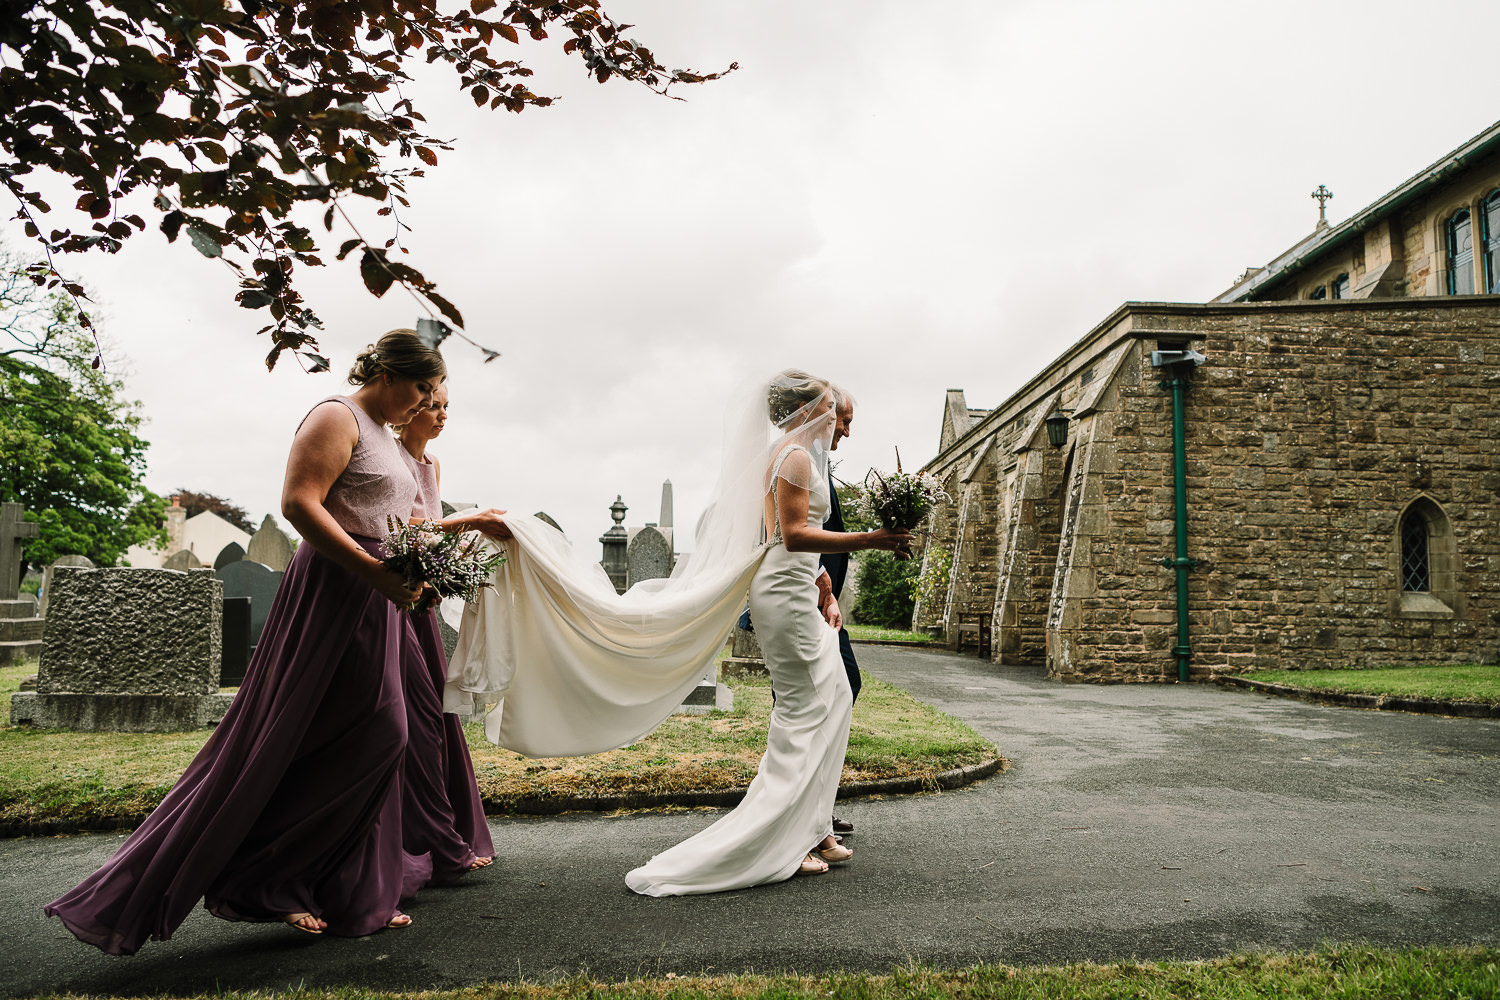 Bride walking to church with her bridesmaids carrying her dress